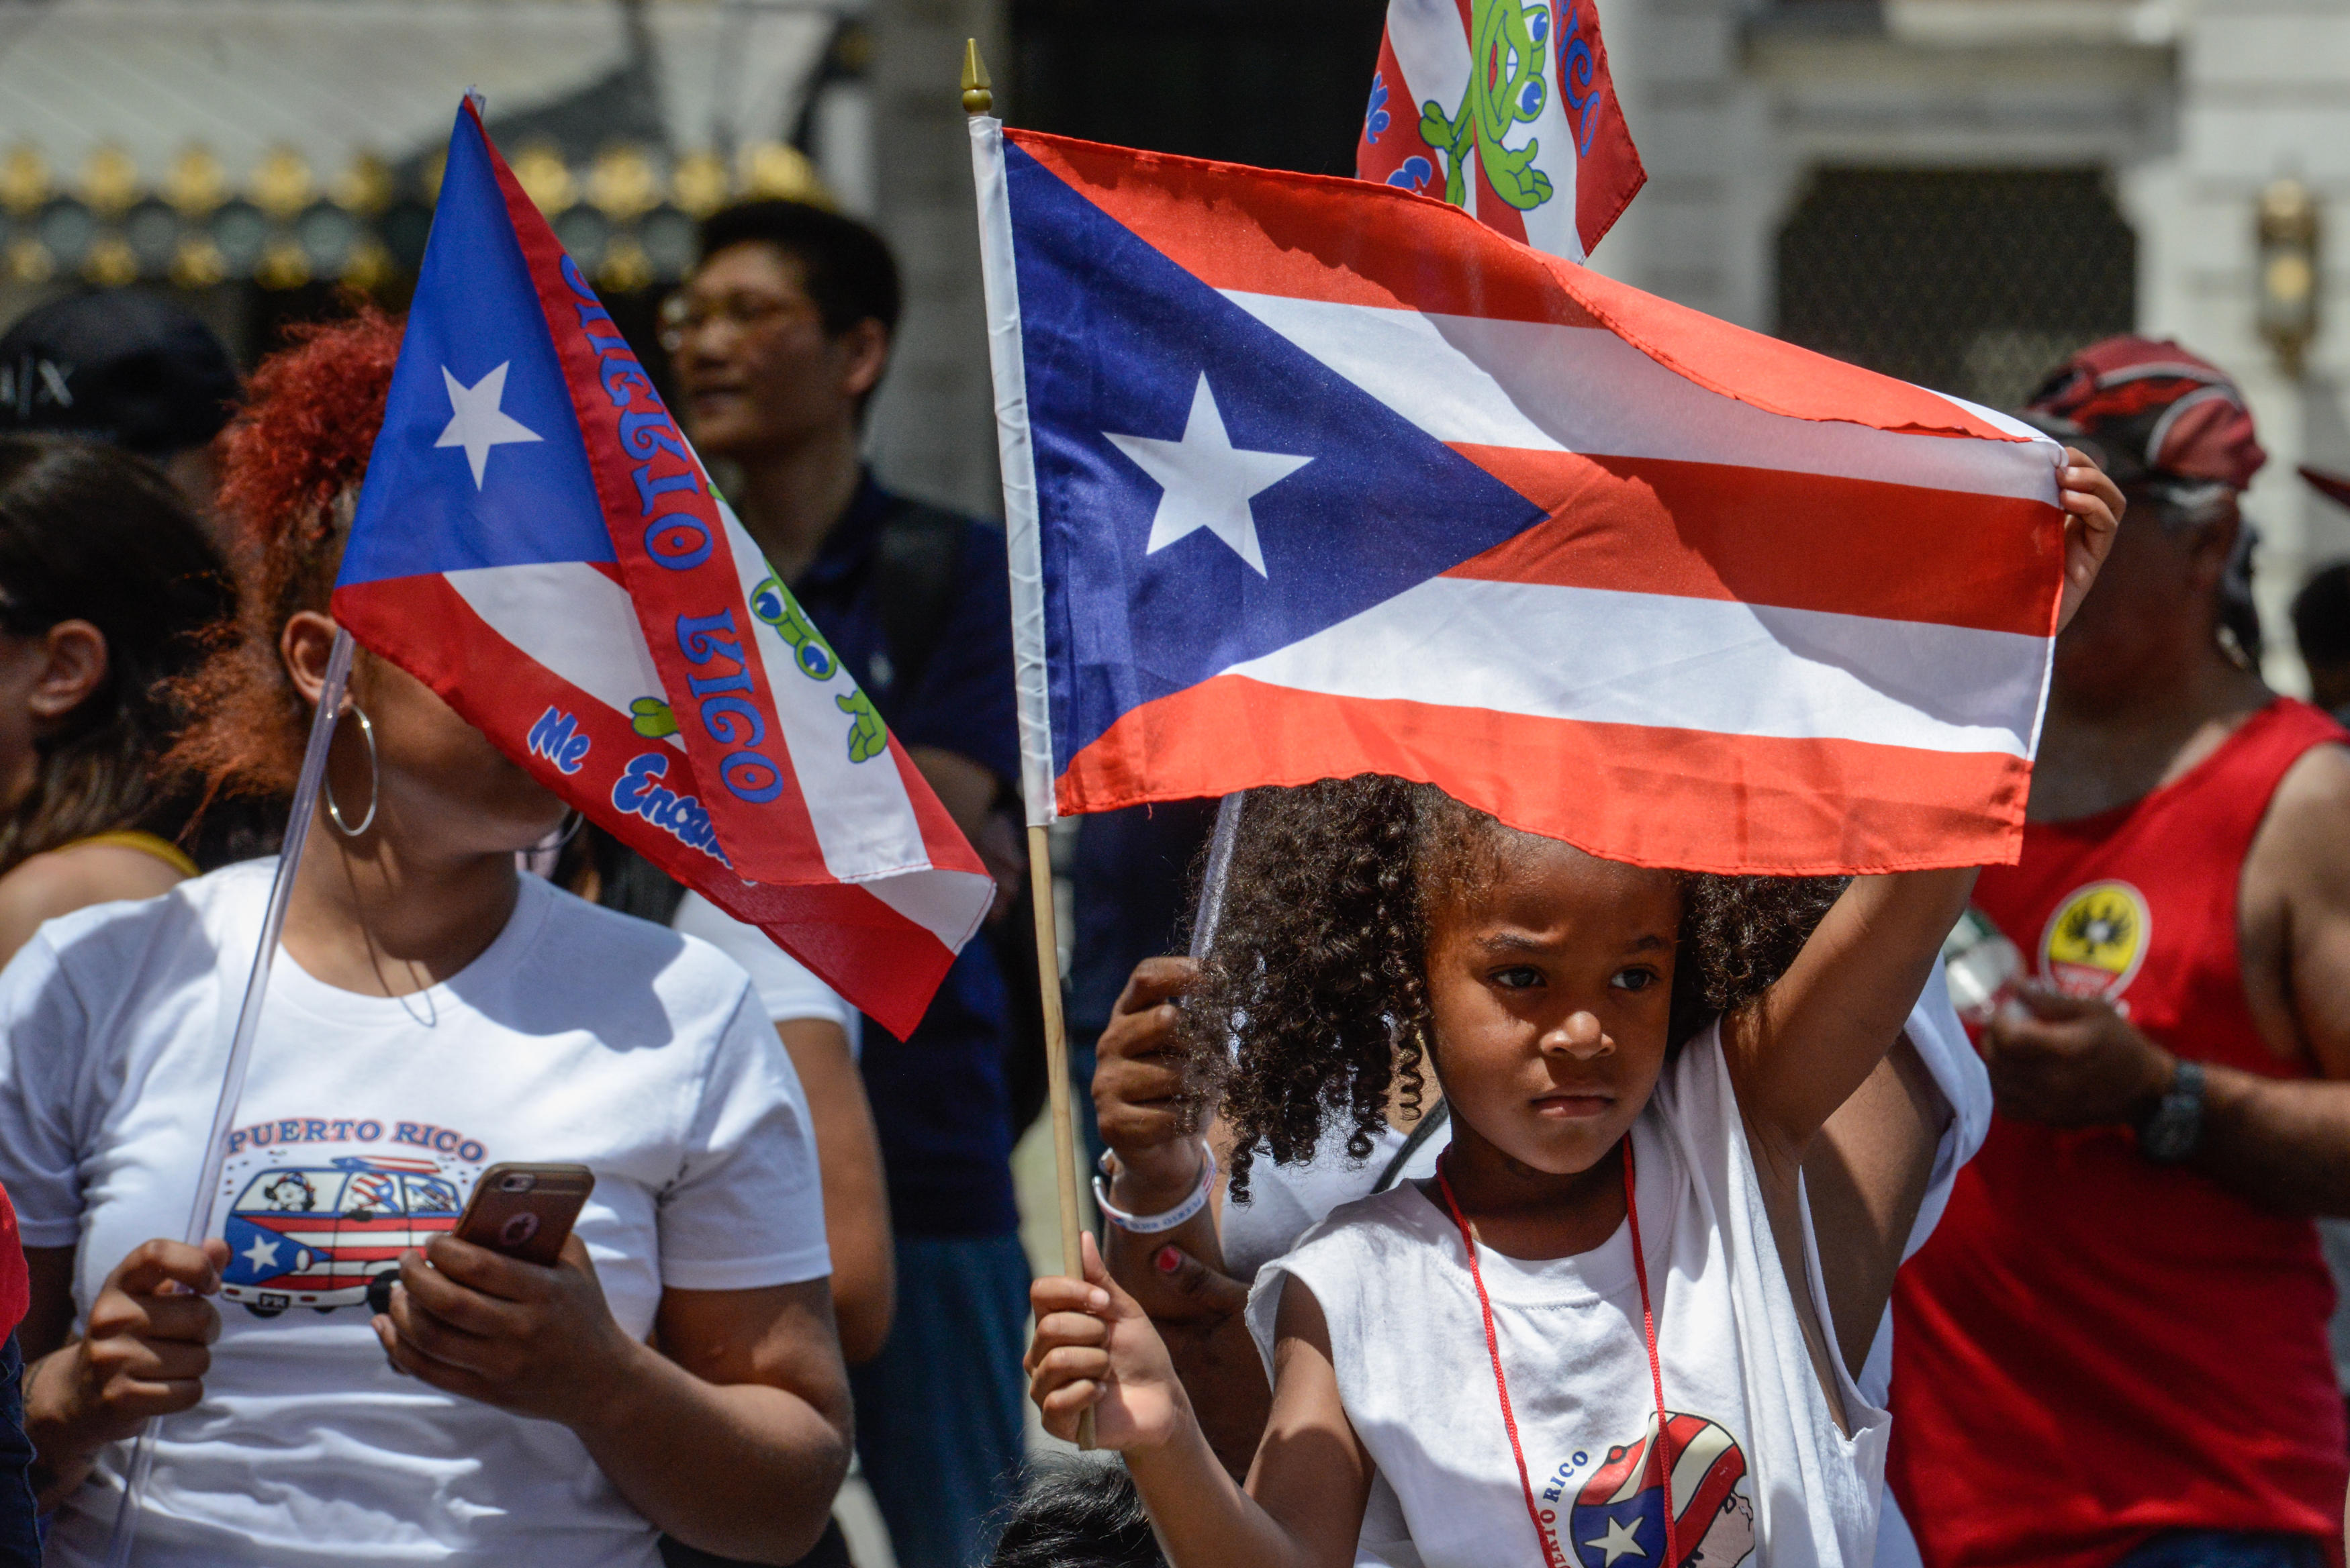 Puerto rican day parade in new york highlights post hurricane pride